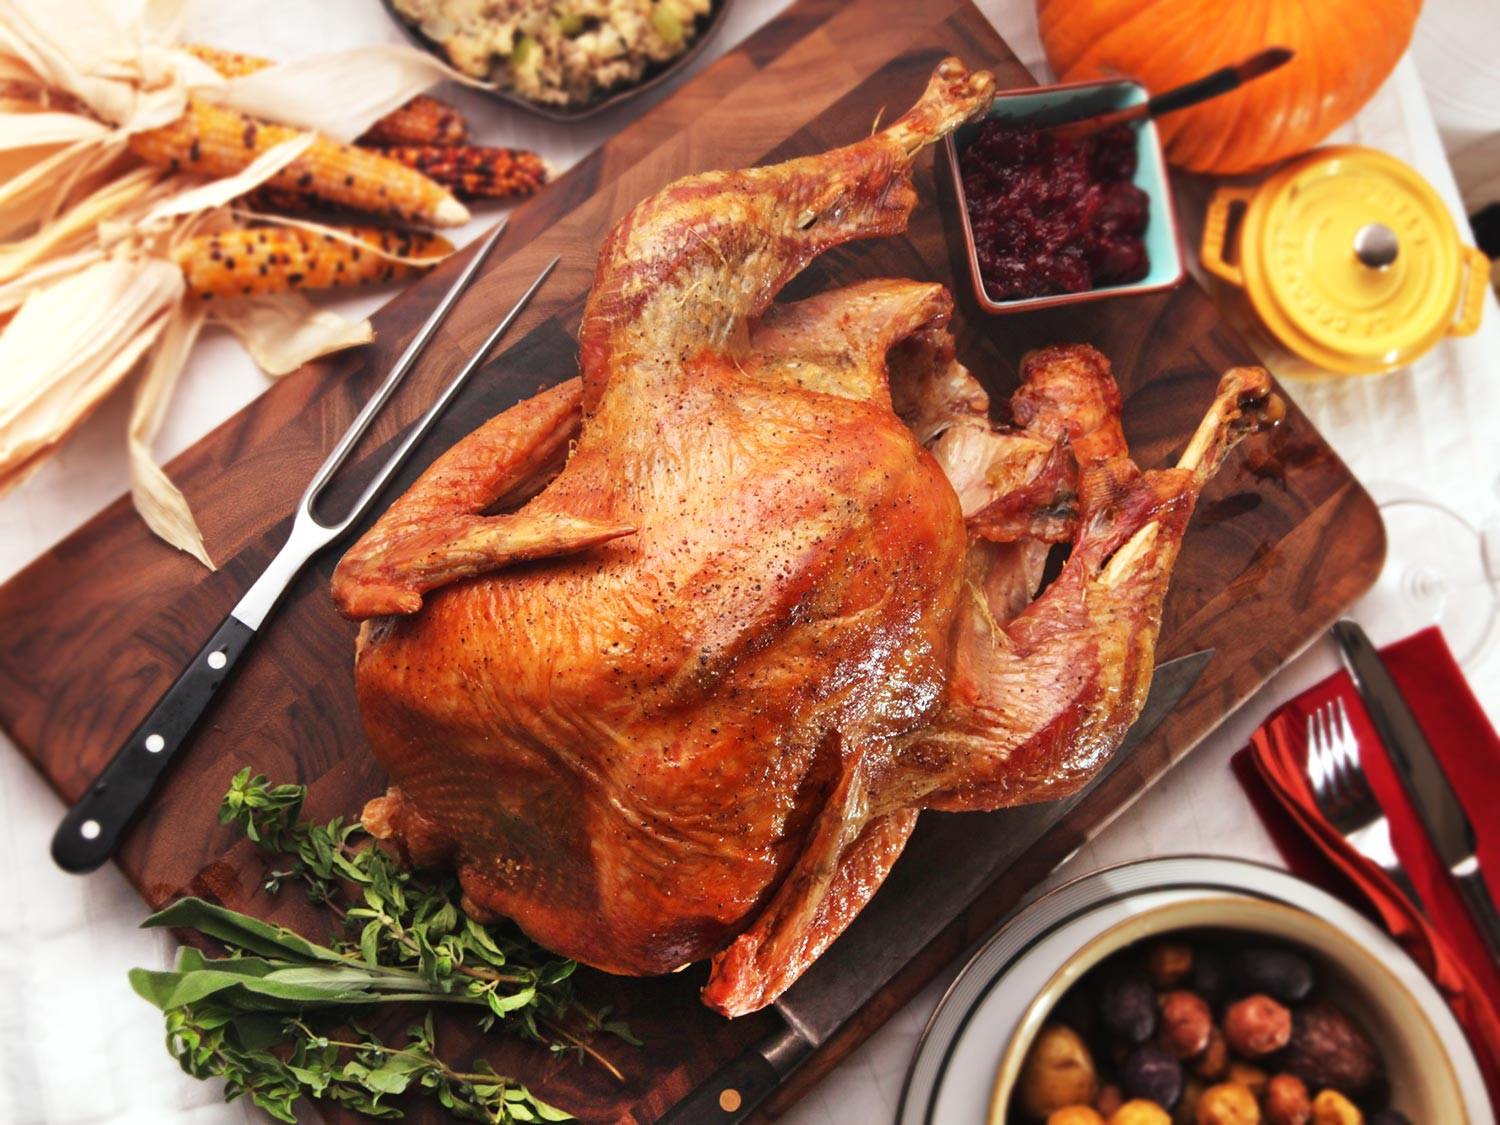 Bake Turkey Recipe For Thanksgiving  The Best Simple Roast Turkey With Gravy Recipe